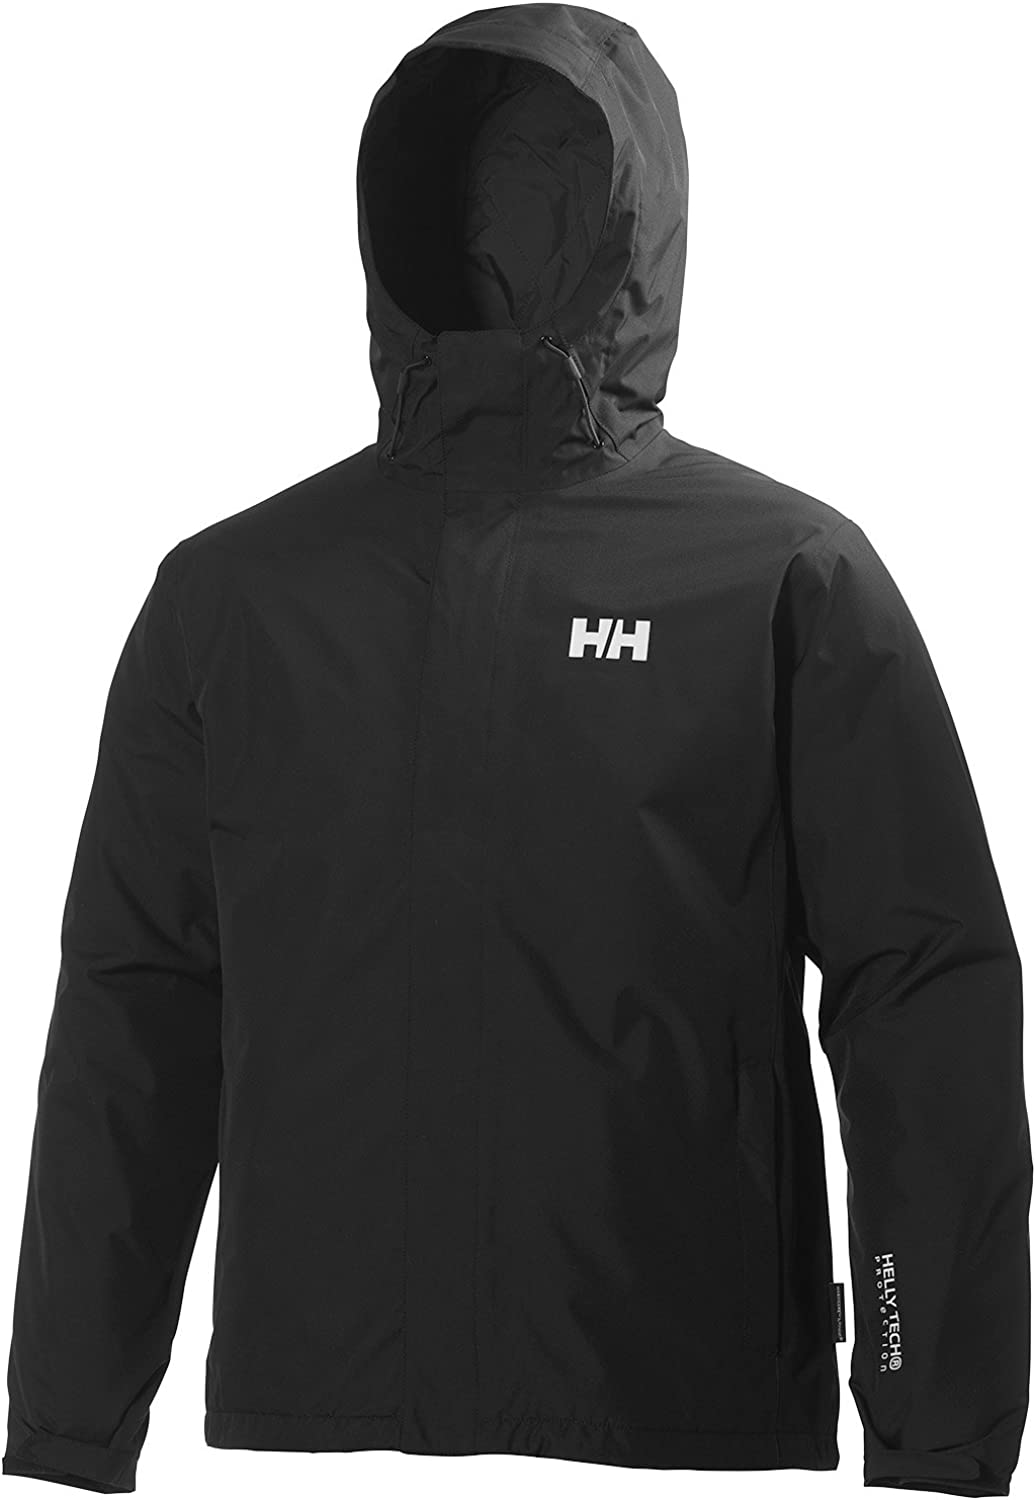 Helly Hansen Men's Seven J Insulated Waterproof, Windproof, and Breathable Rain Jacket with Hood